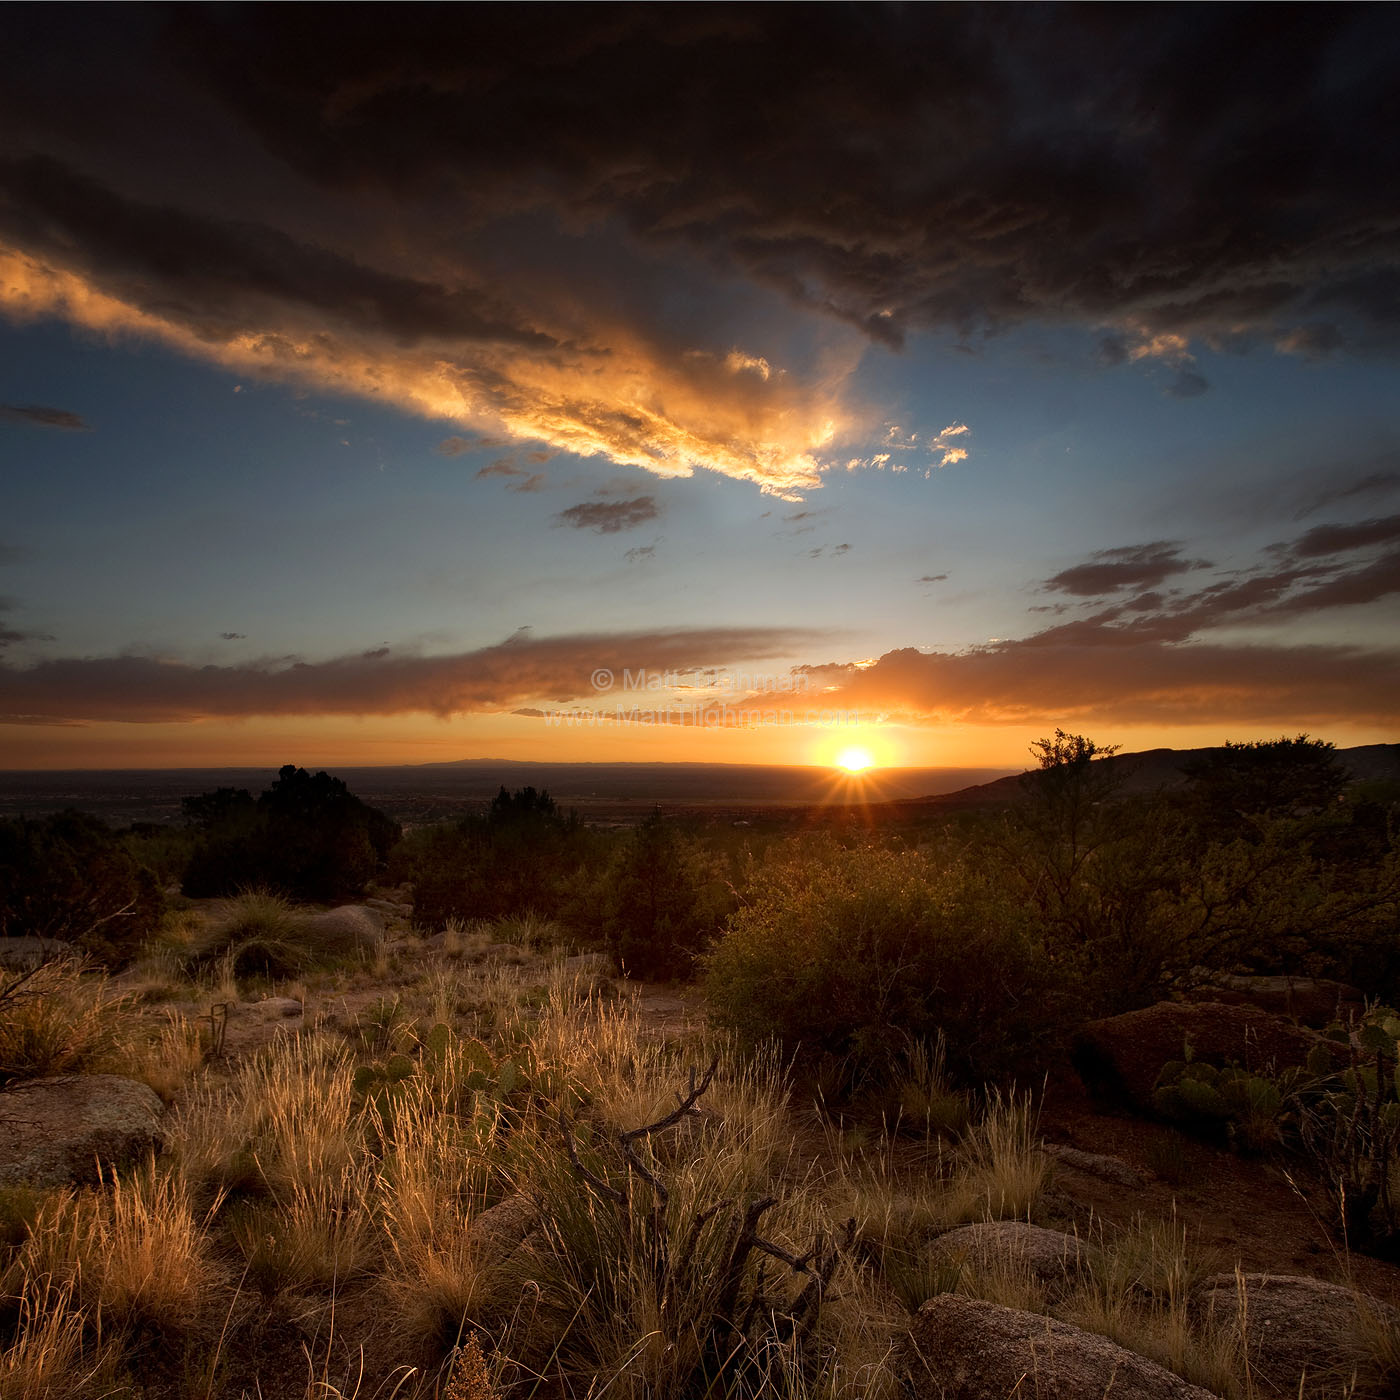 Fine art stock photograph of a volatile desert sunset outside of Albuquerque, New Mexico, near the Sandia Mountains. The summer monsoon season fills the sky with beautiful dramatic cloudscapes.